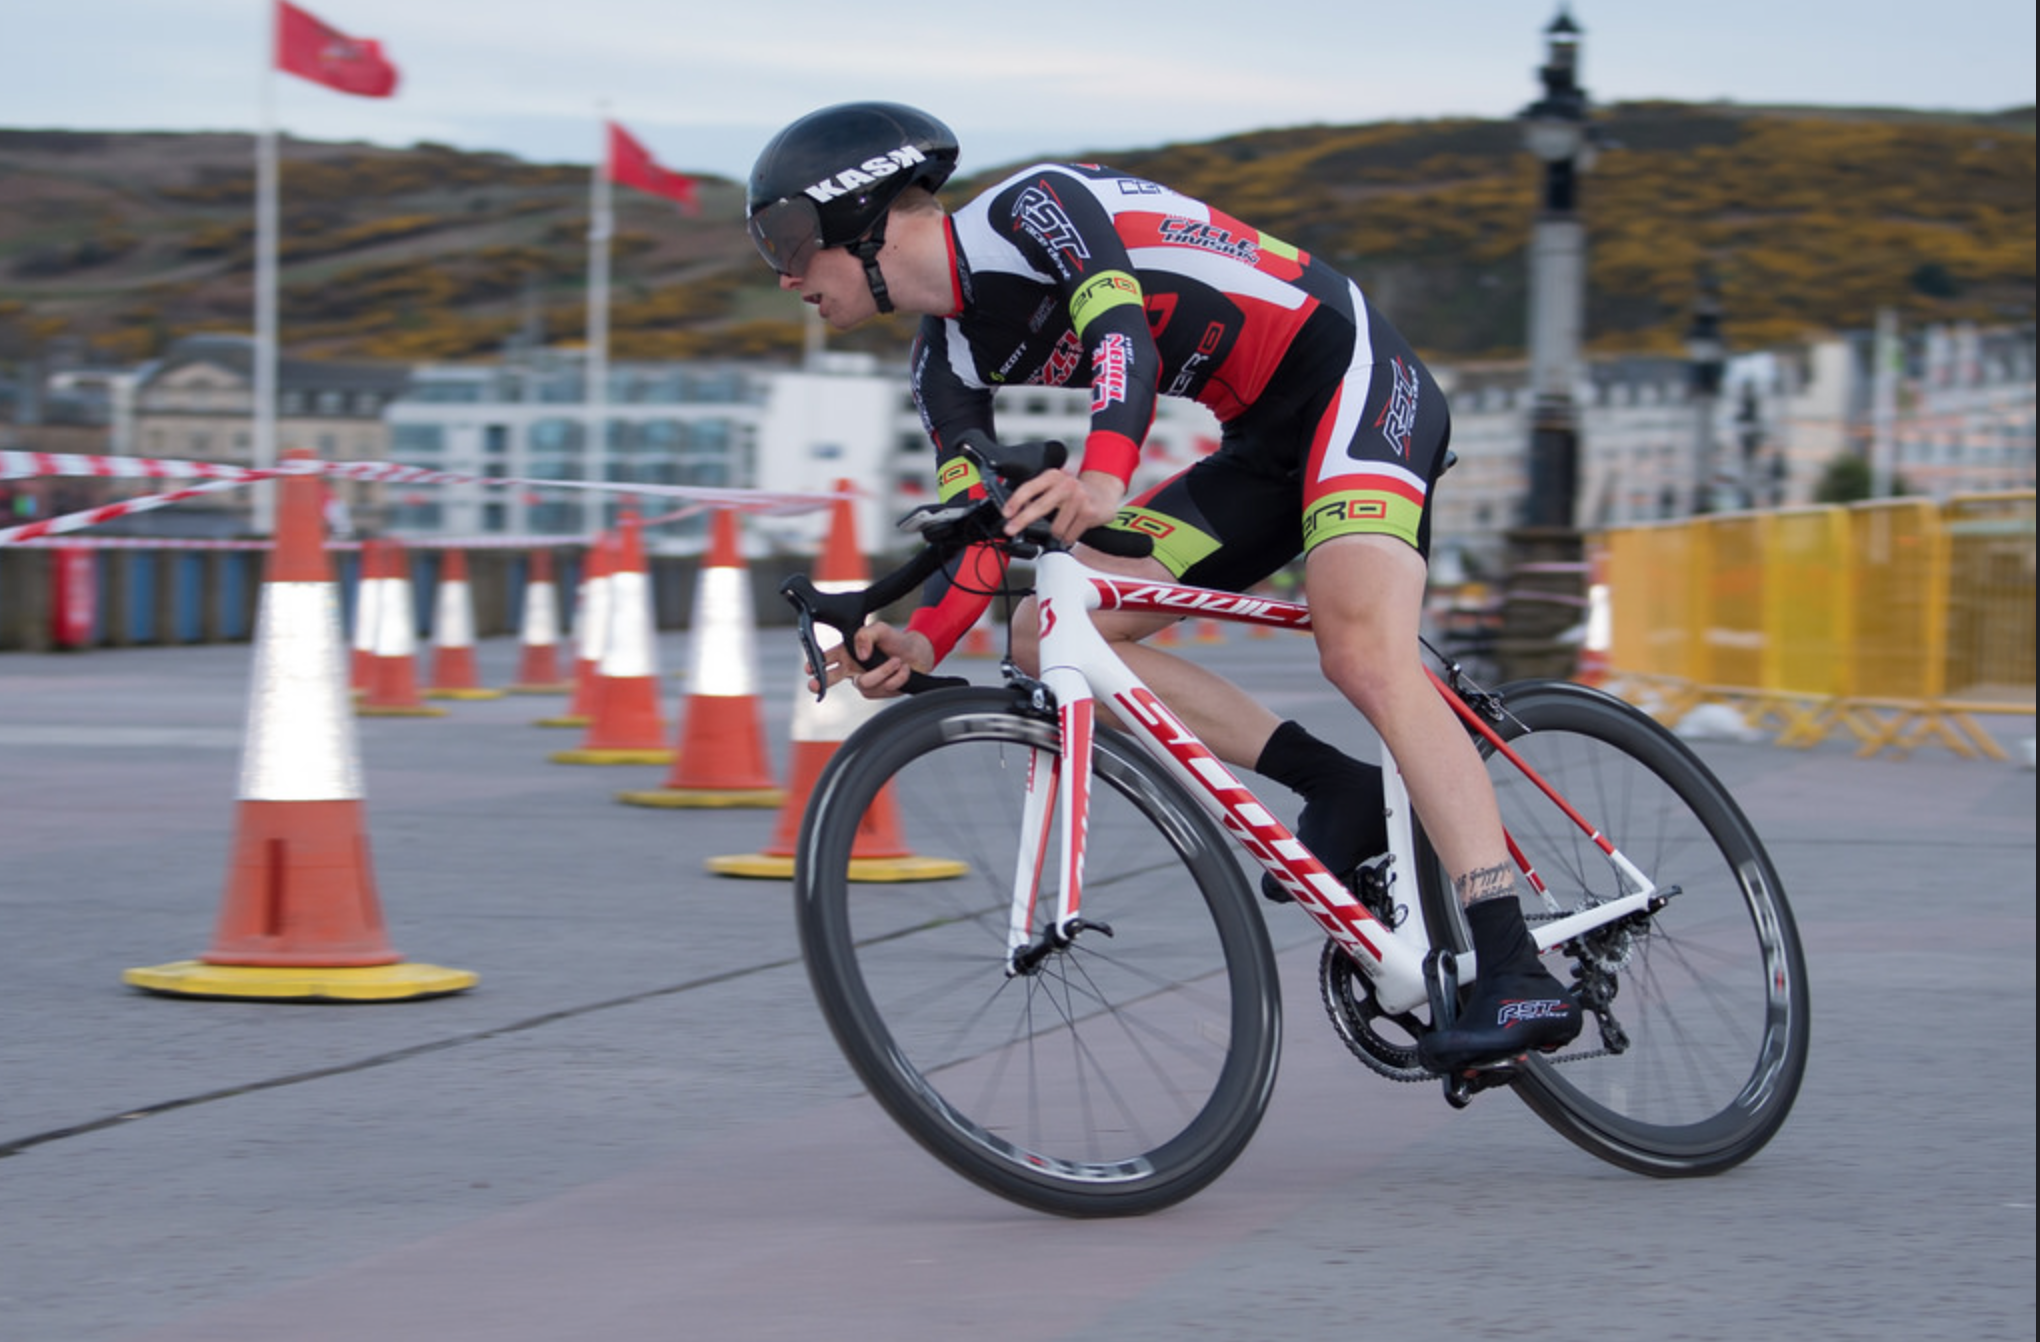 Joe Fry IOM prologue